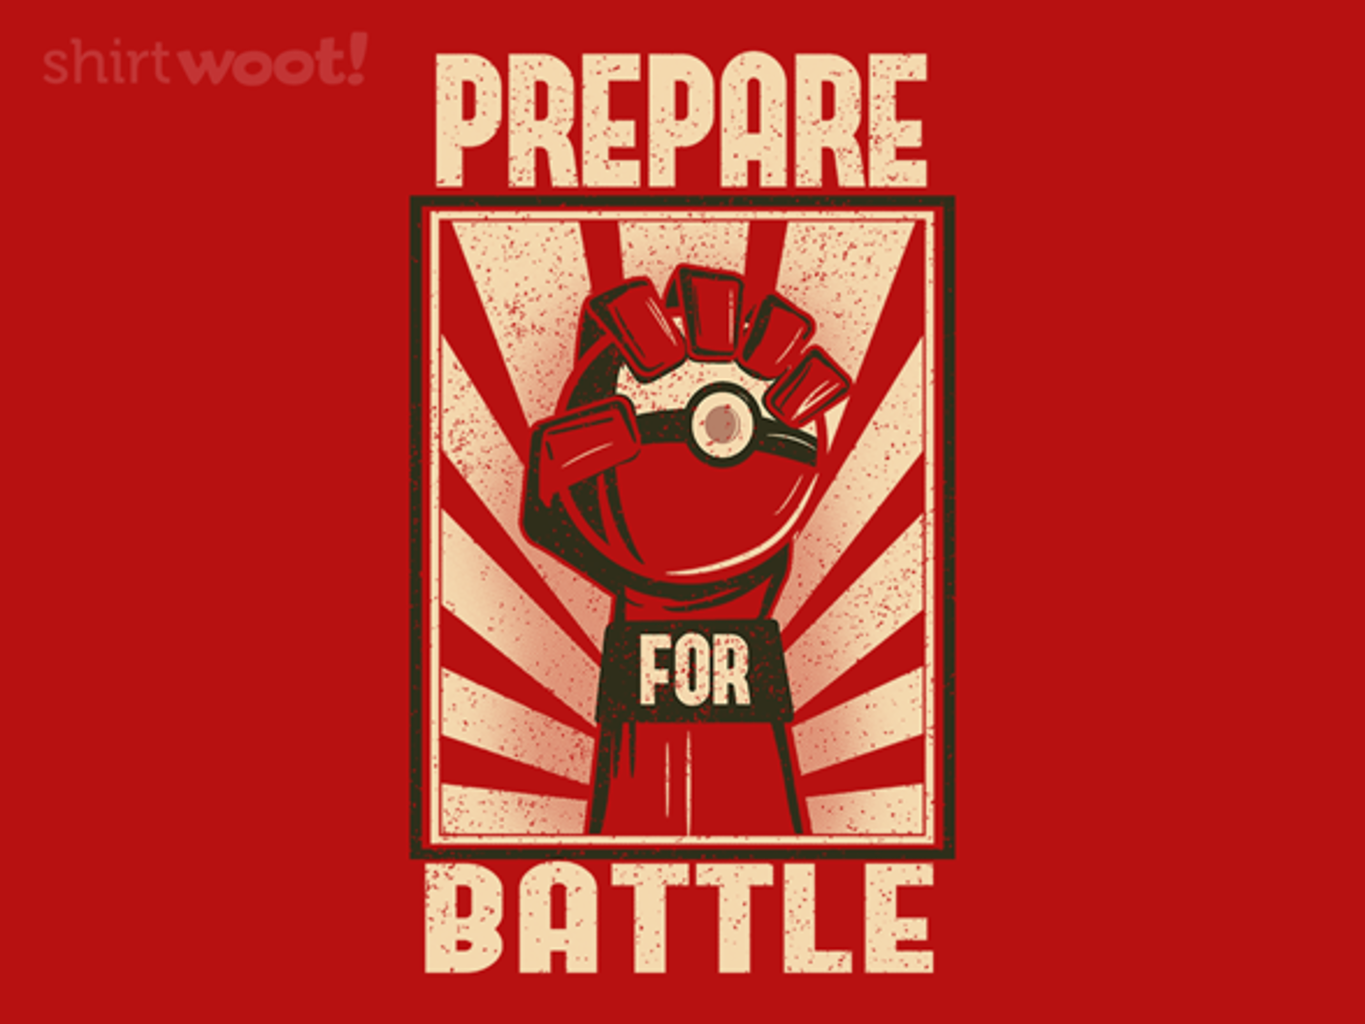 Woot!: Prepare for battle